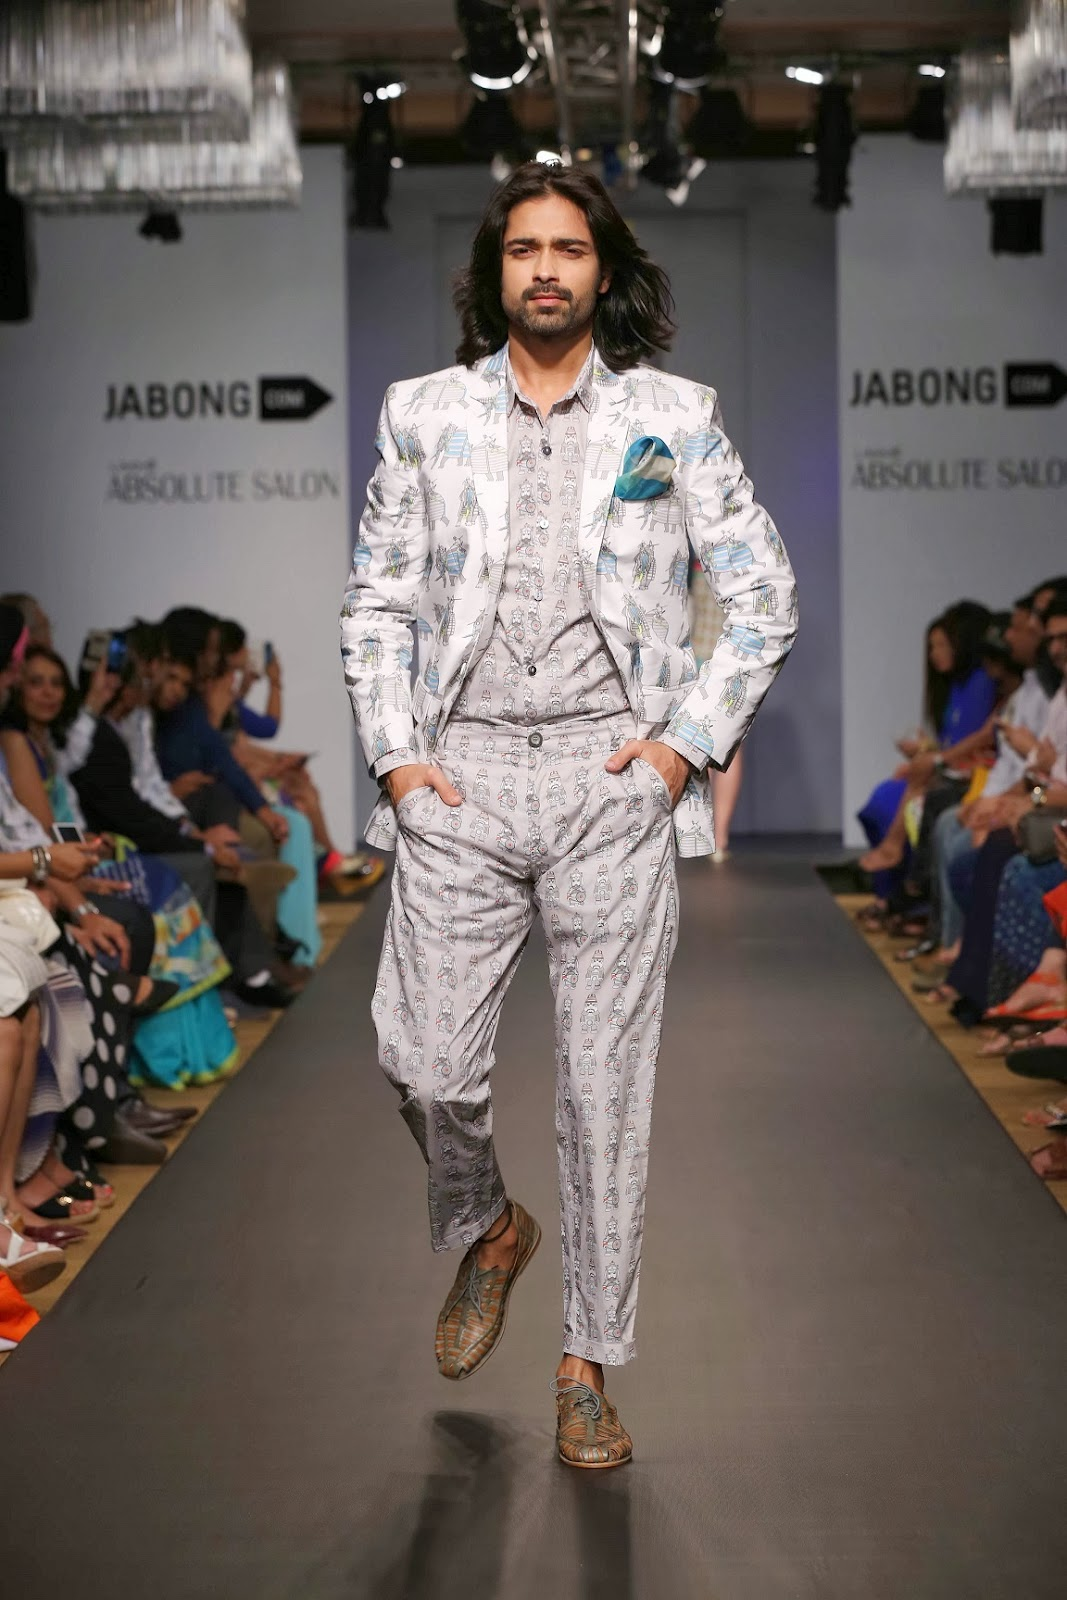 Designer duo Rixi Bhatia and Jayesh Sachdev showcased a flashy-trendy collection under their label 'QUIRKBOX'. For the modern man who isn't afraid to stand out and try the eccentric, this range offered shorts, trousers, vests, jackets and shirts which were perfect for any occasion